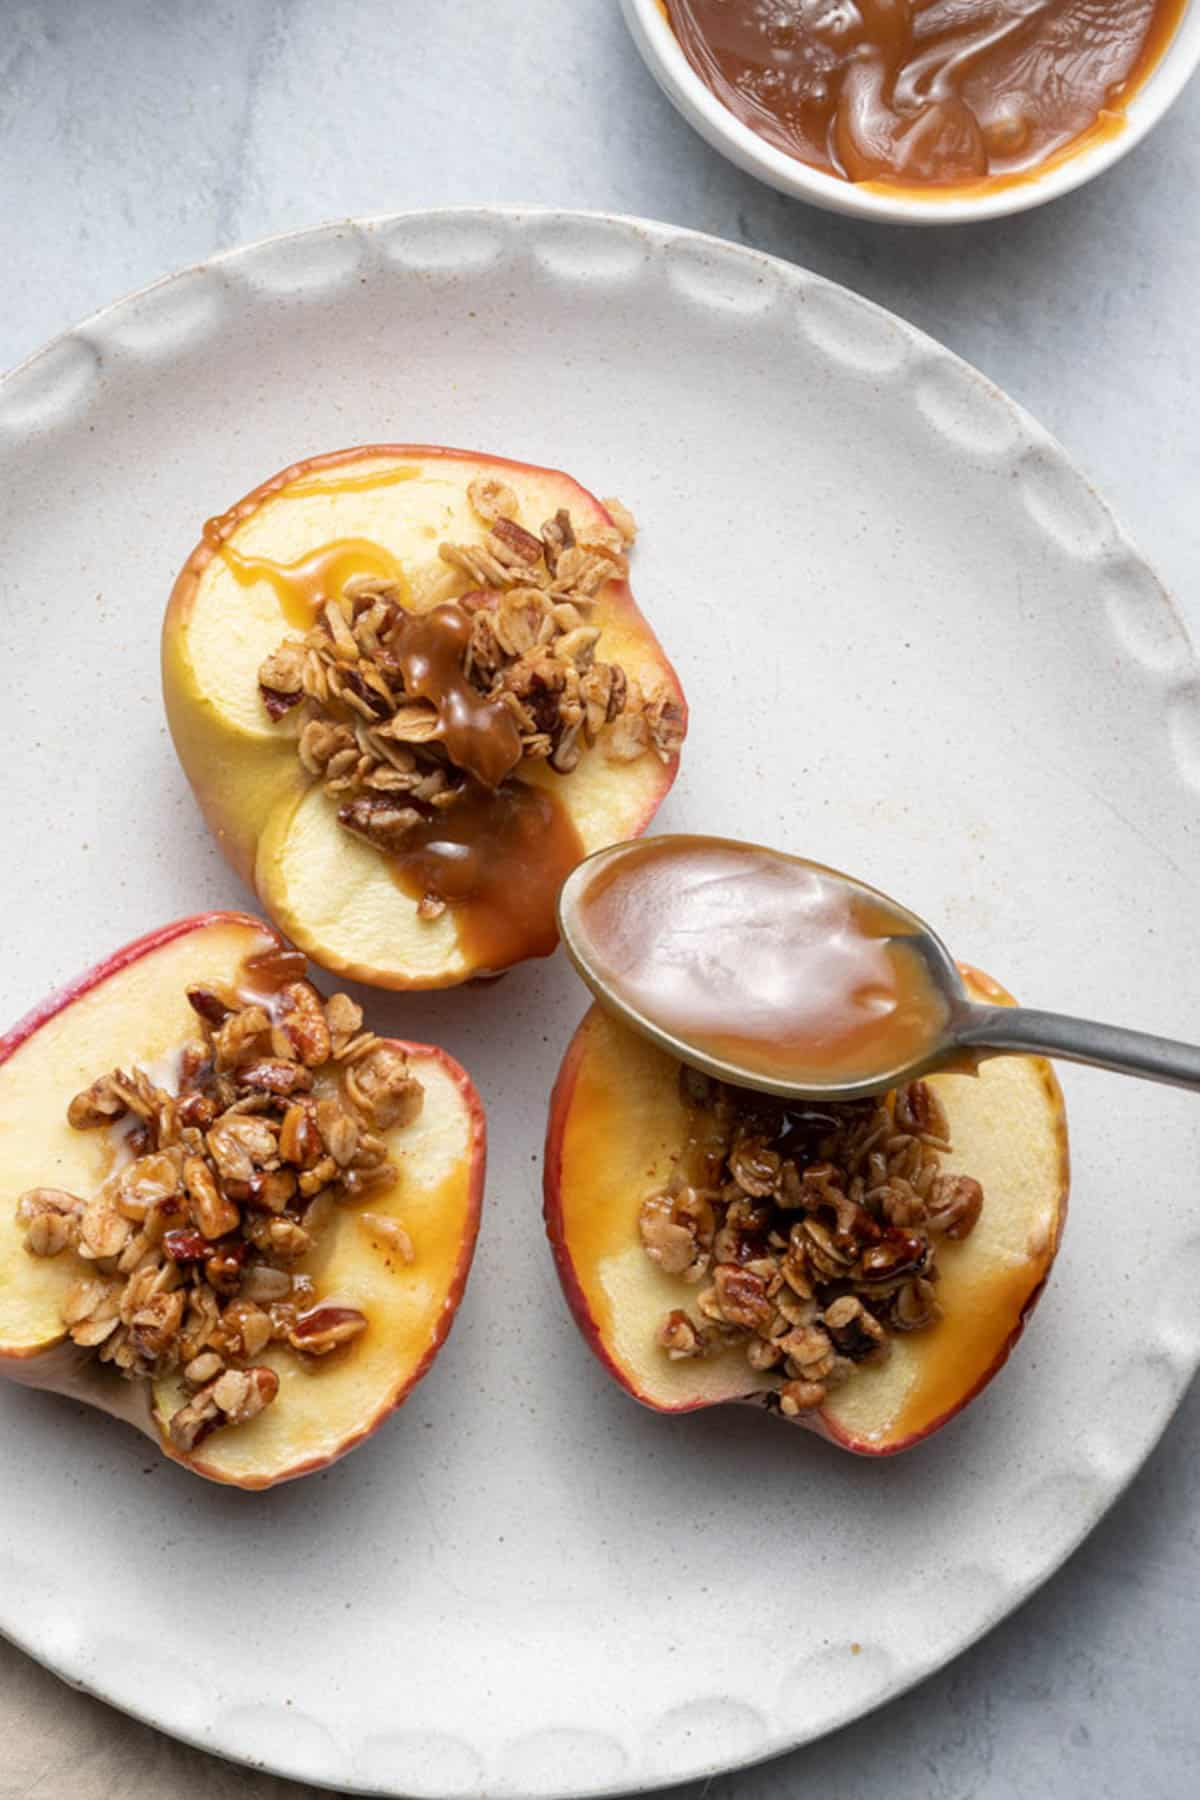 Spoon with caramel sauce going over the cinnamon bakedapples